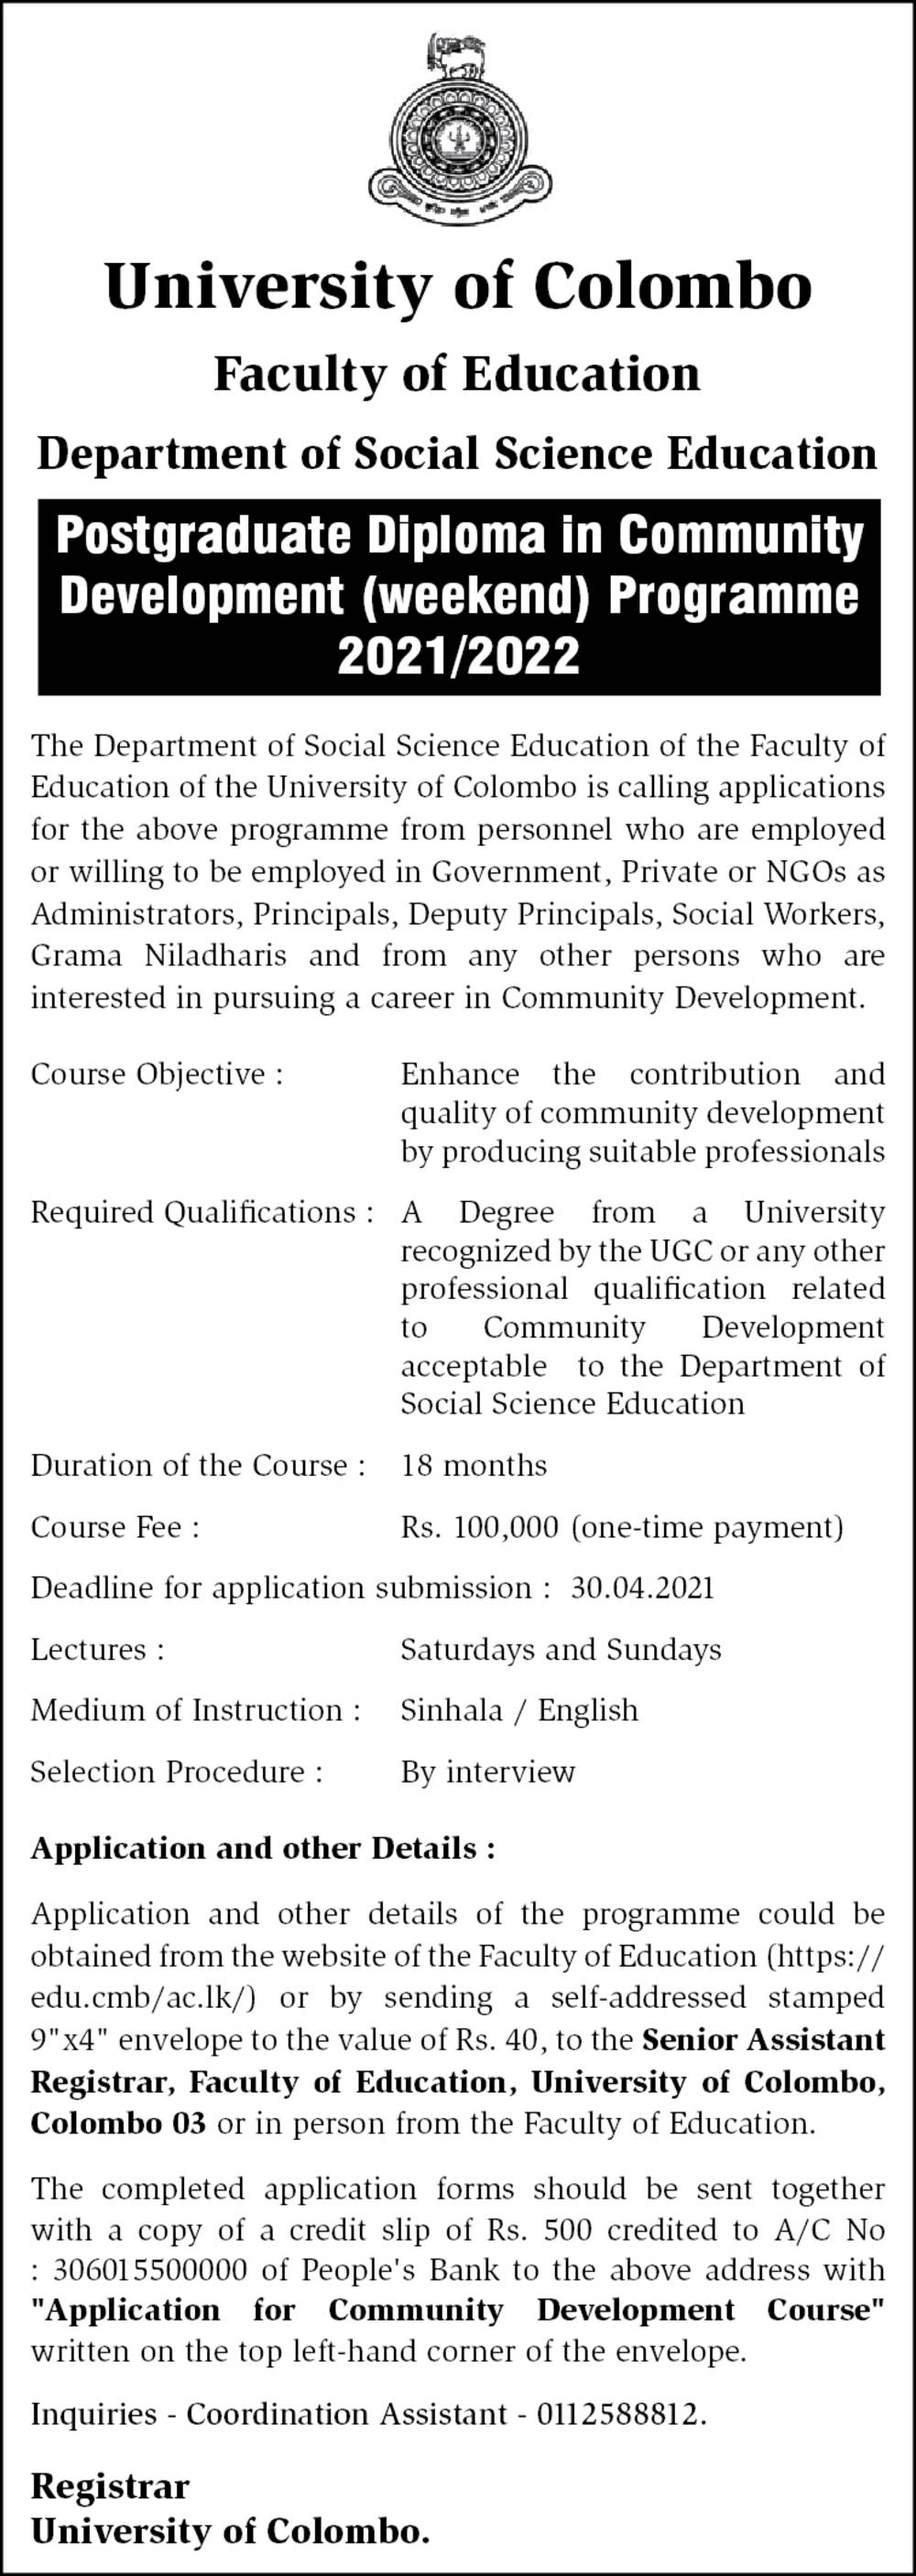 Postgraduate Diploma in Community Development (Weekend) Programme (2021/2022) -Faculty of Education - University of Colombo